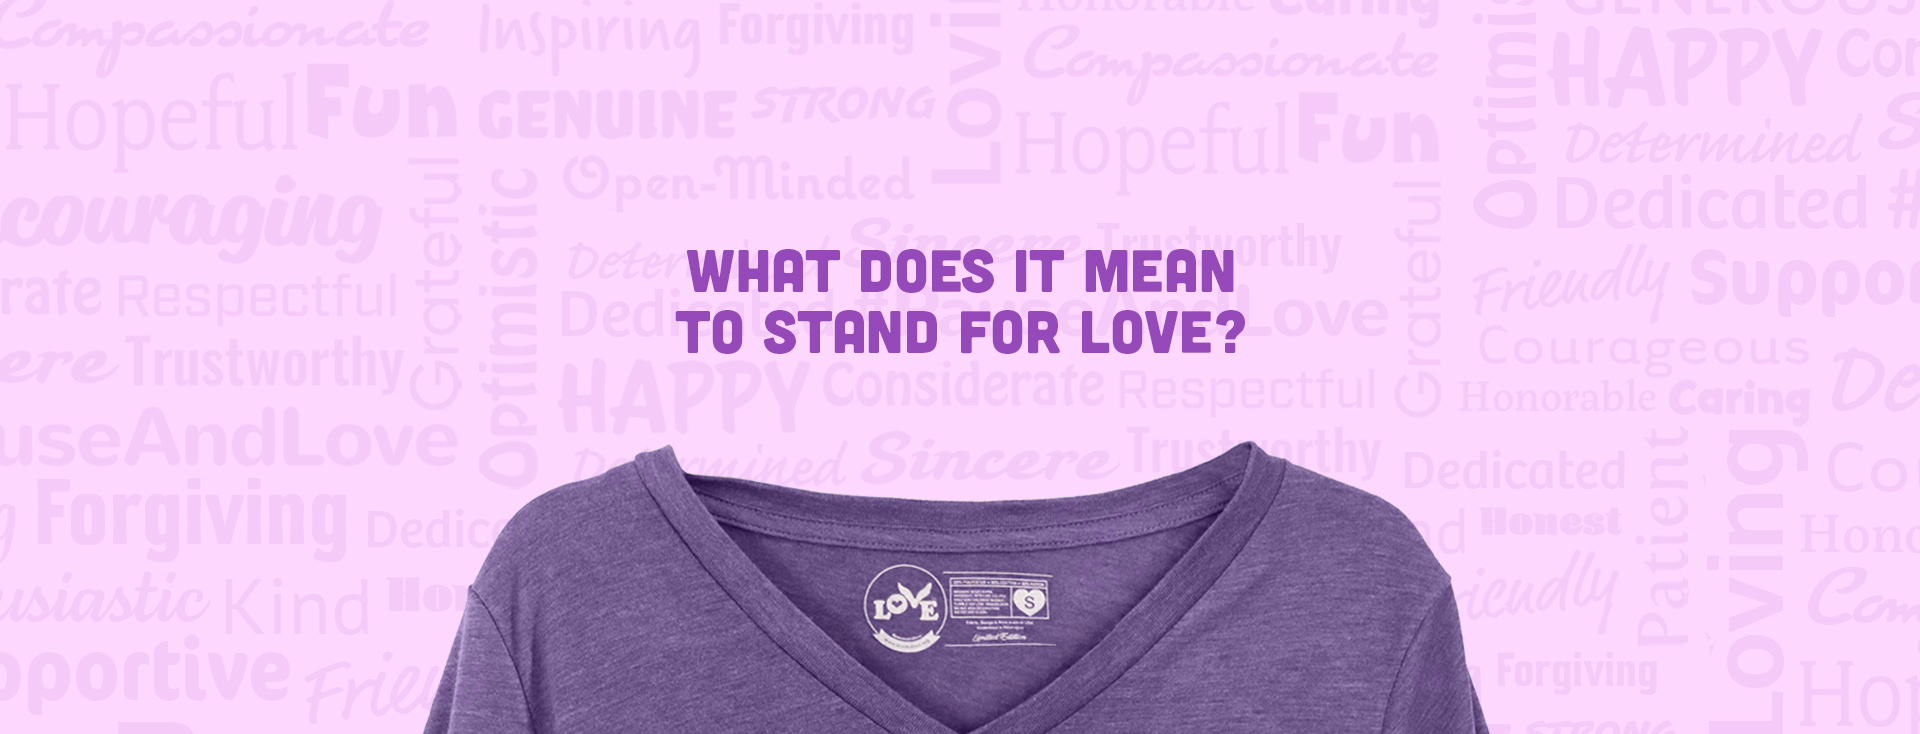 What Does It Mean to Stand for Love?